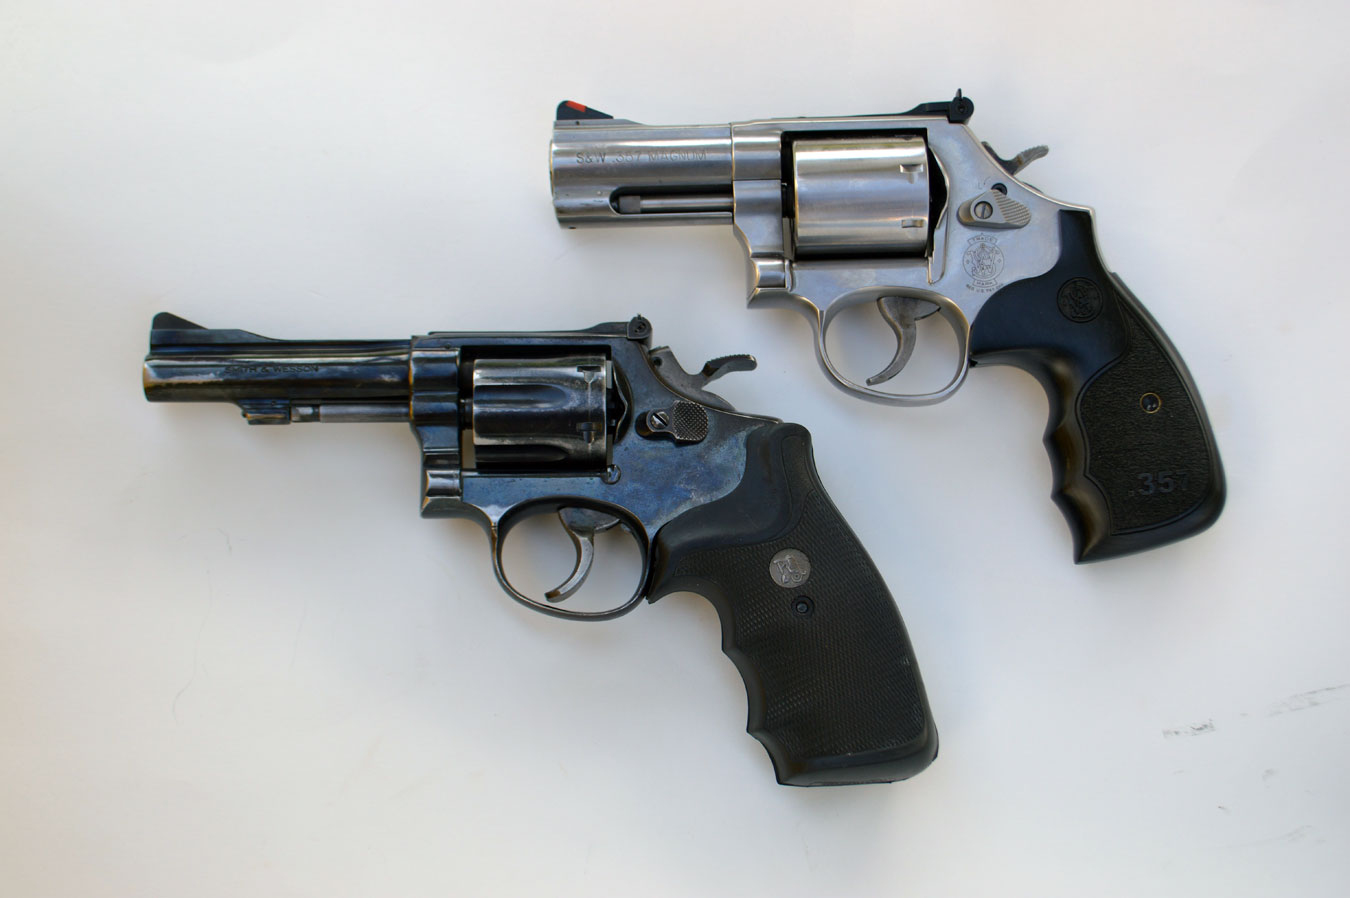 Smith and Wesson L frame and K frame revolvers